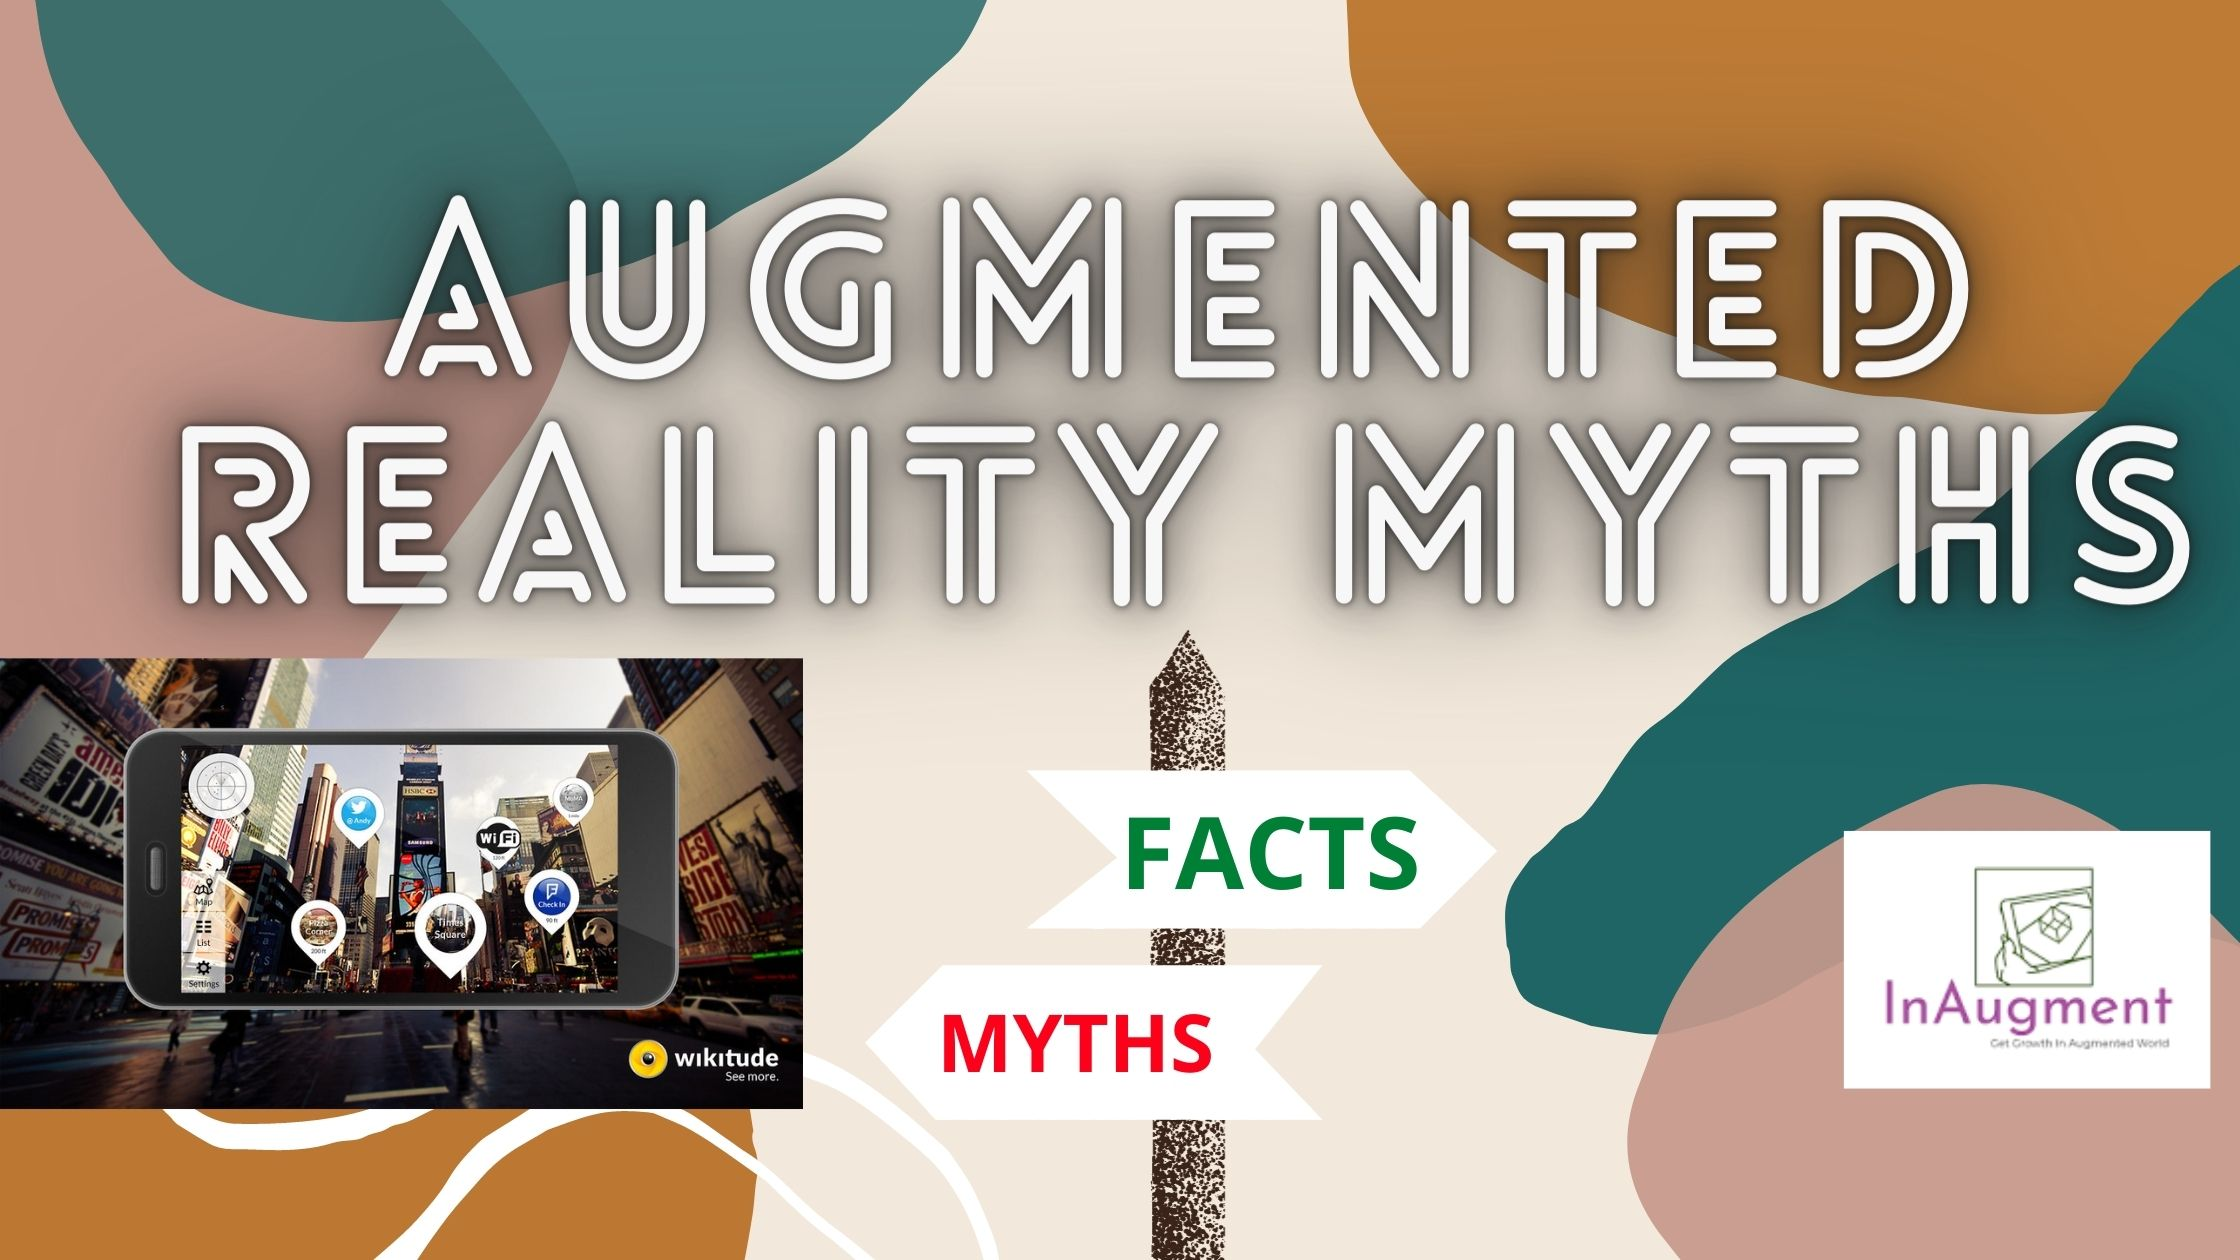 Augmented Reality myths